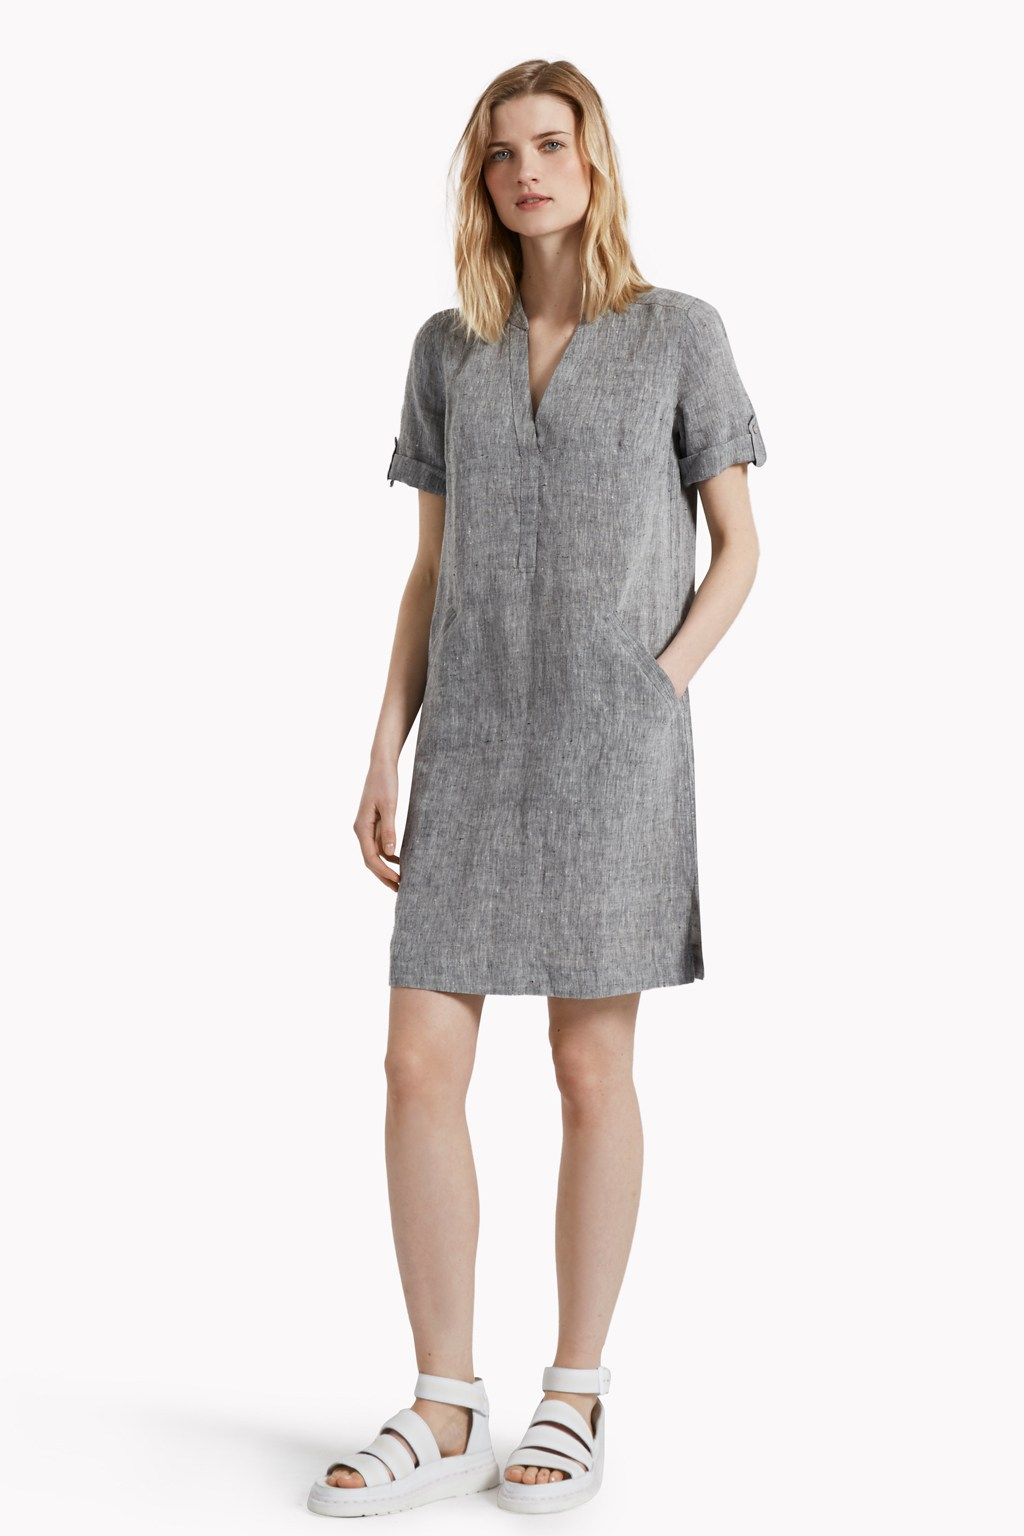 Find grey melange dress at ShopStyle. Shop the latest collection of grey melange dress from the most popular stores - all in one place.